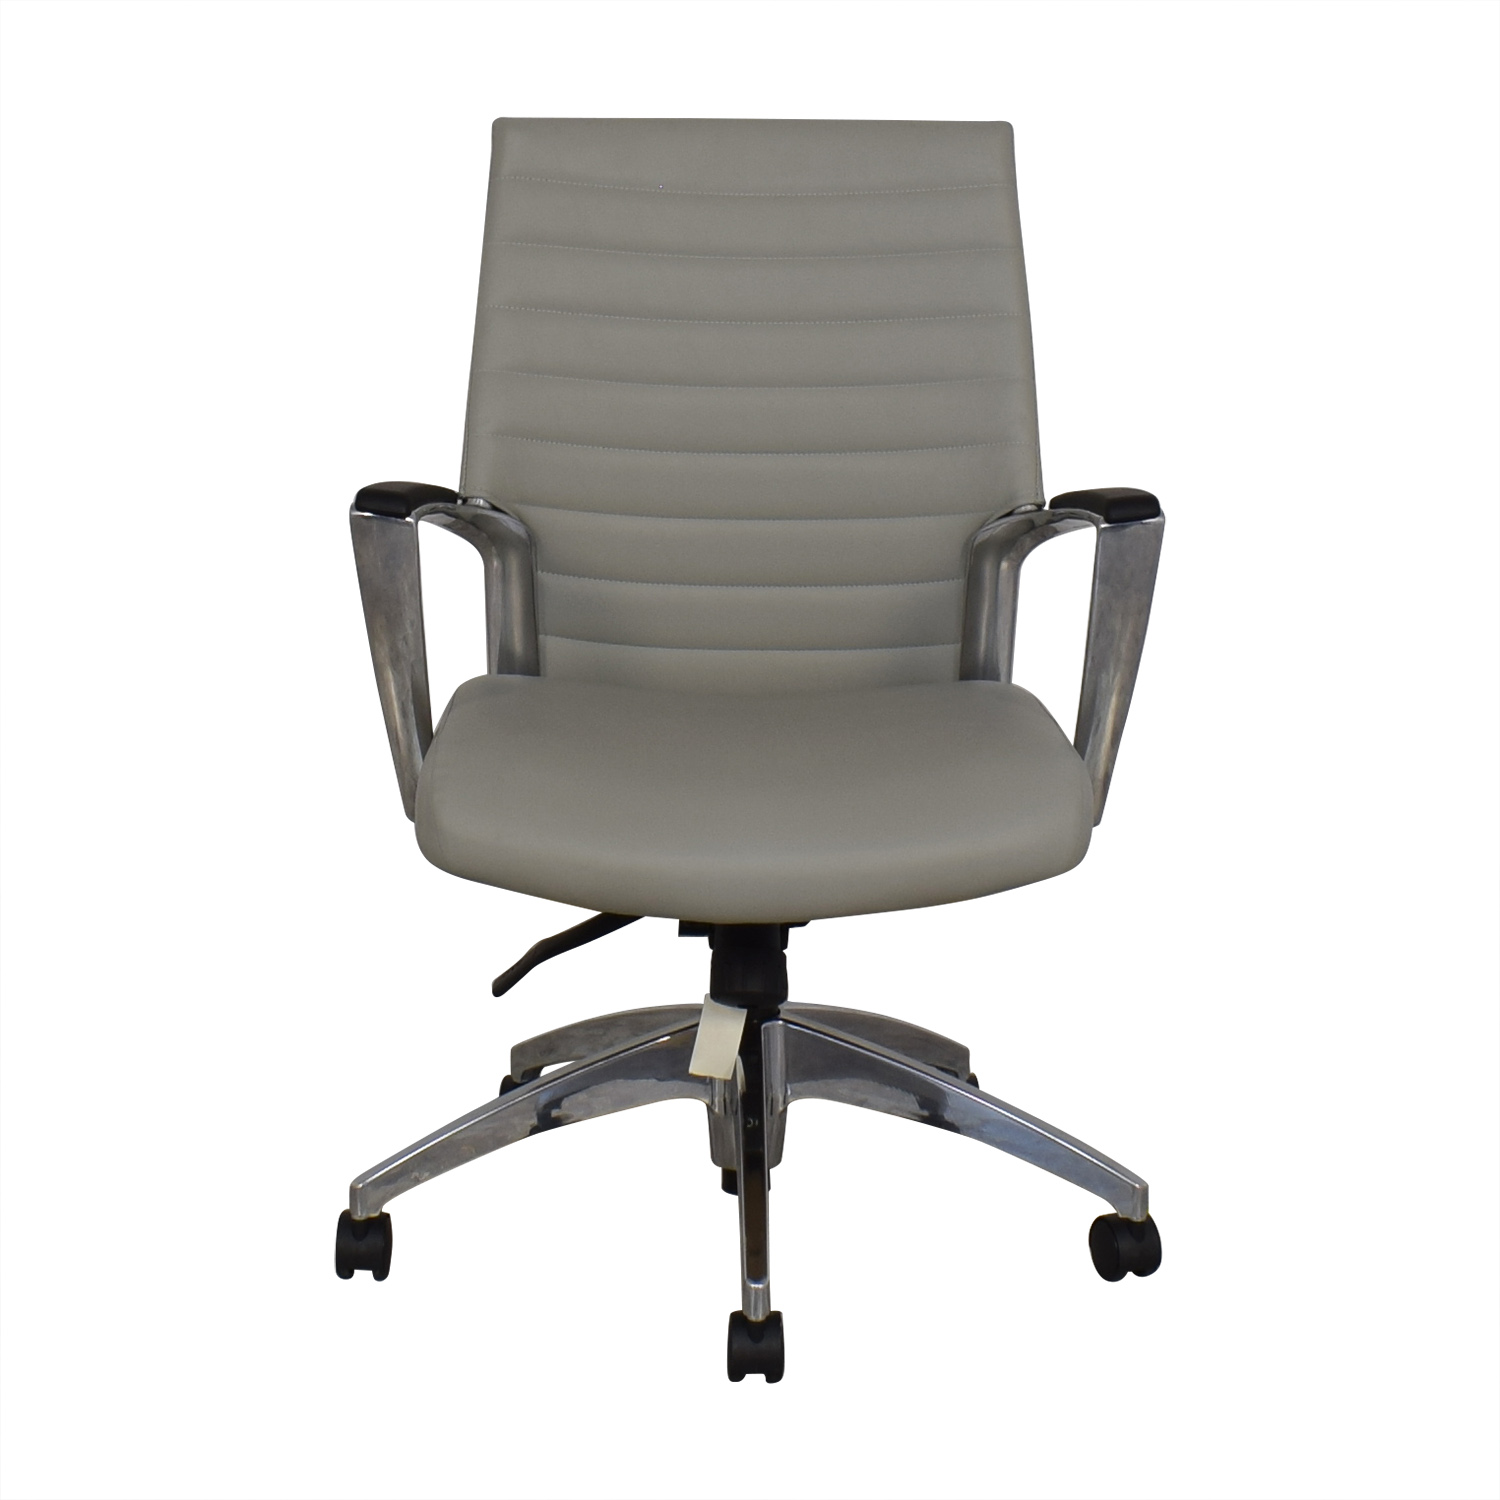 Global Global Accord Mid Back Tilter Chair for sale